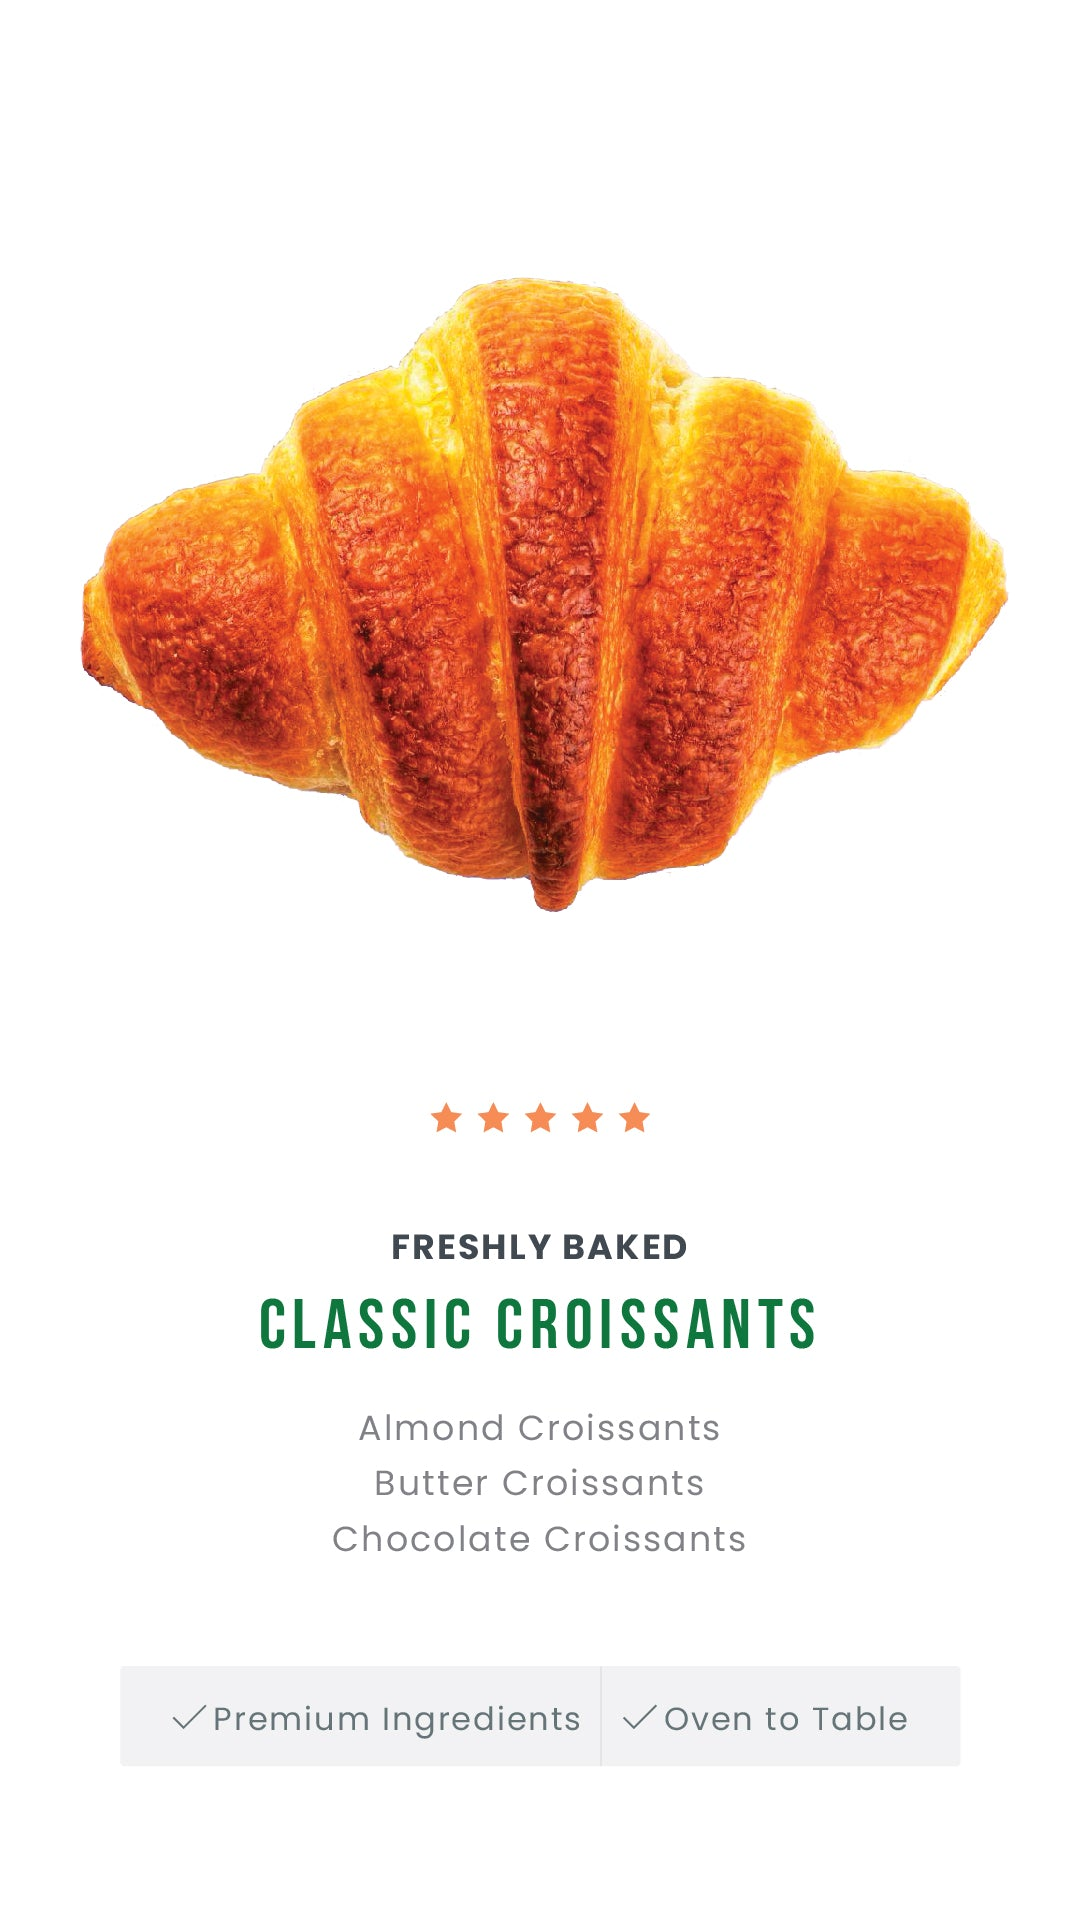 Buttery, flakey and light in texture, our croissants have an open, deliciously beautiful honeycomb center. Handcrafted using the best, premium ingredients, they are fluffy and soft with a melt-in-your-mouth character.